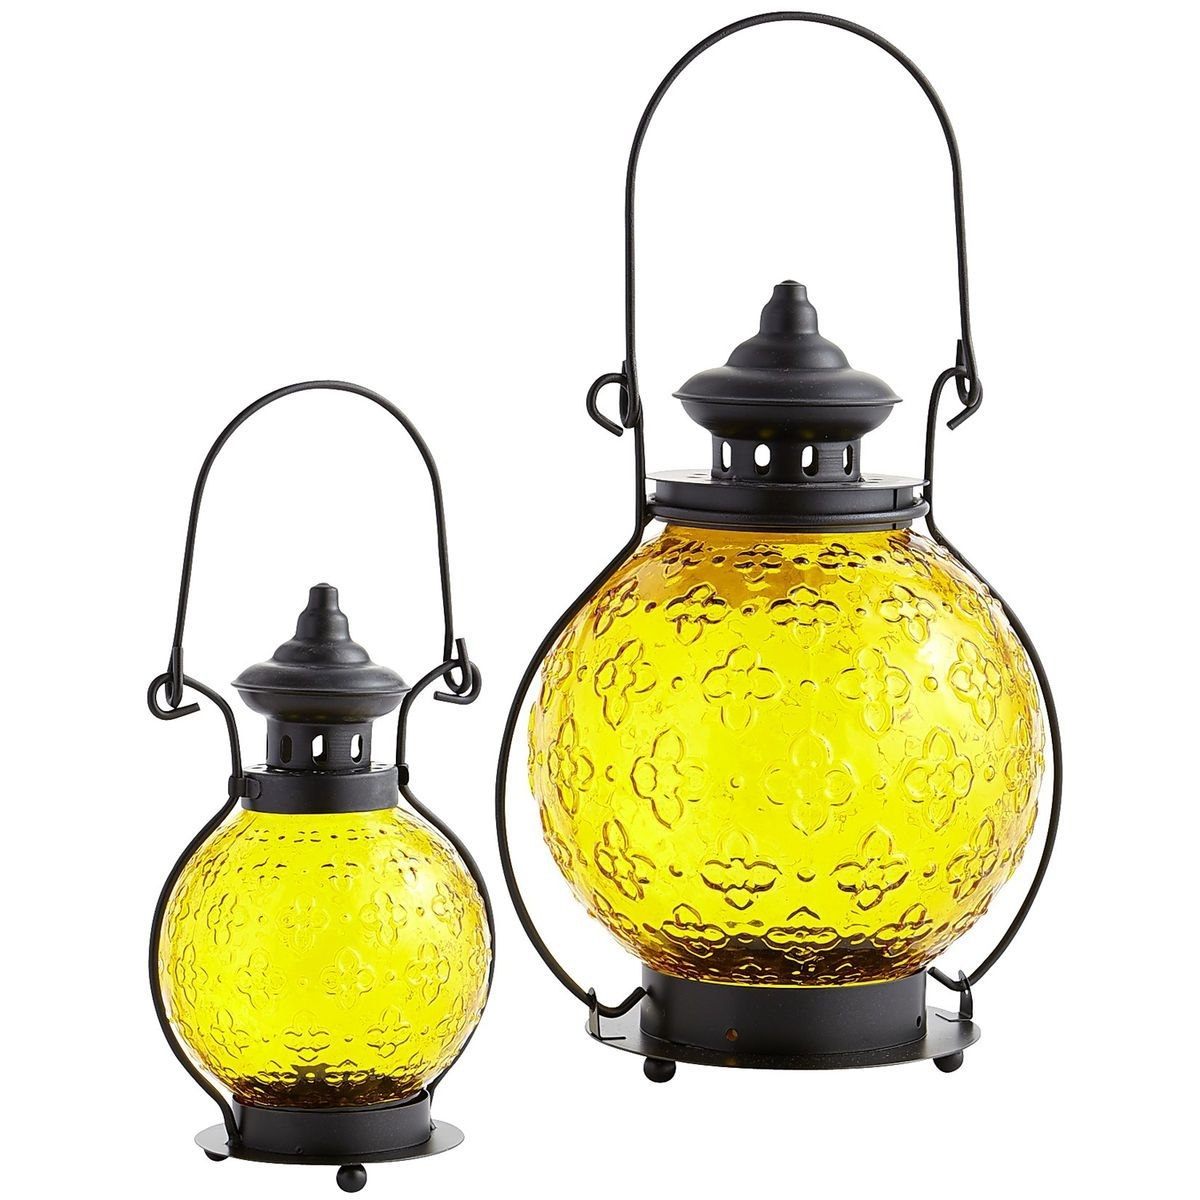 Medallion Glass Lanterns - Yellow | Pier 1 Imports | Outdoor Lights pertaining to Yellow Outdoor Lanterns (Image 15 of 20)